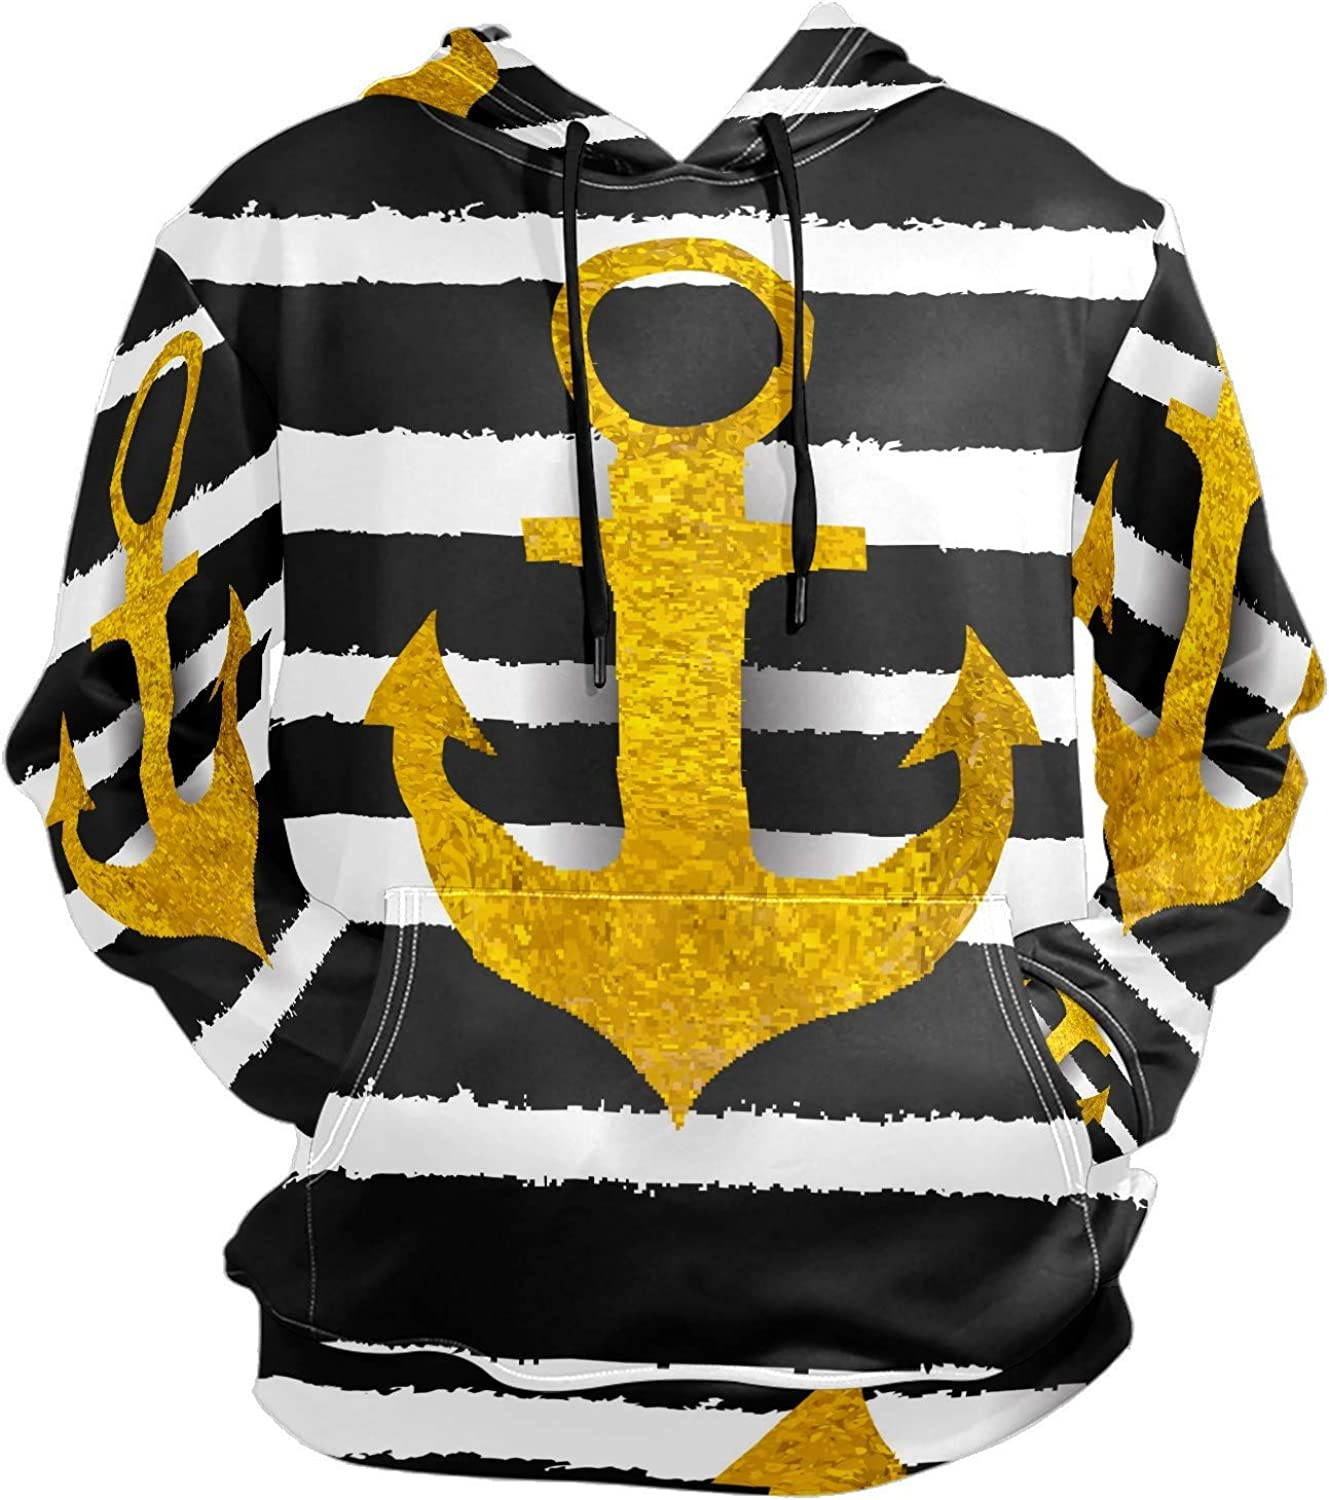 Men's Sport Hoodie Nautical Golden Anchorblack Striped Big and Tall Hoodies for Men Women Oversized Hooded Sweatshirt Hip Hop Pullover Hoodie Midweight Hood for Boys Girls